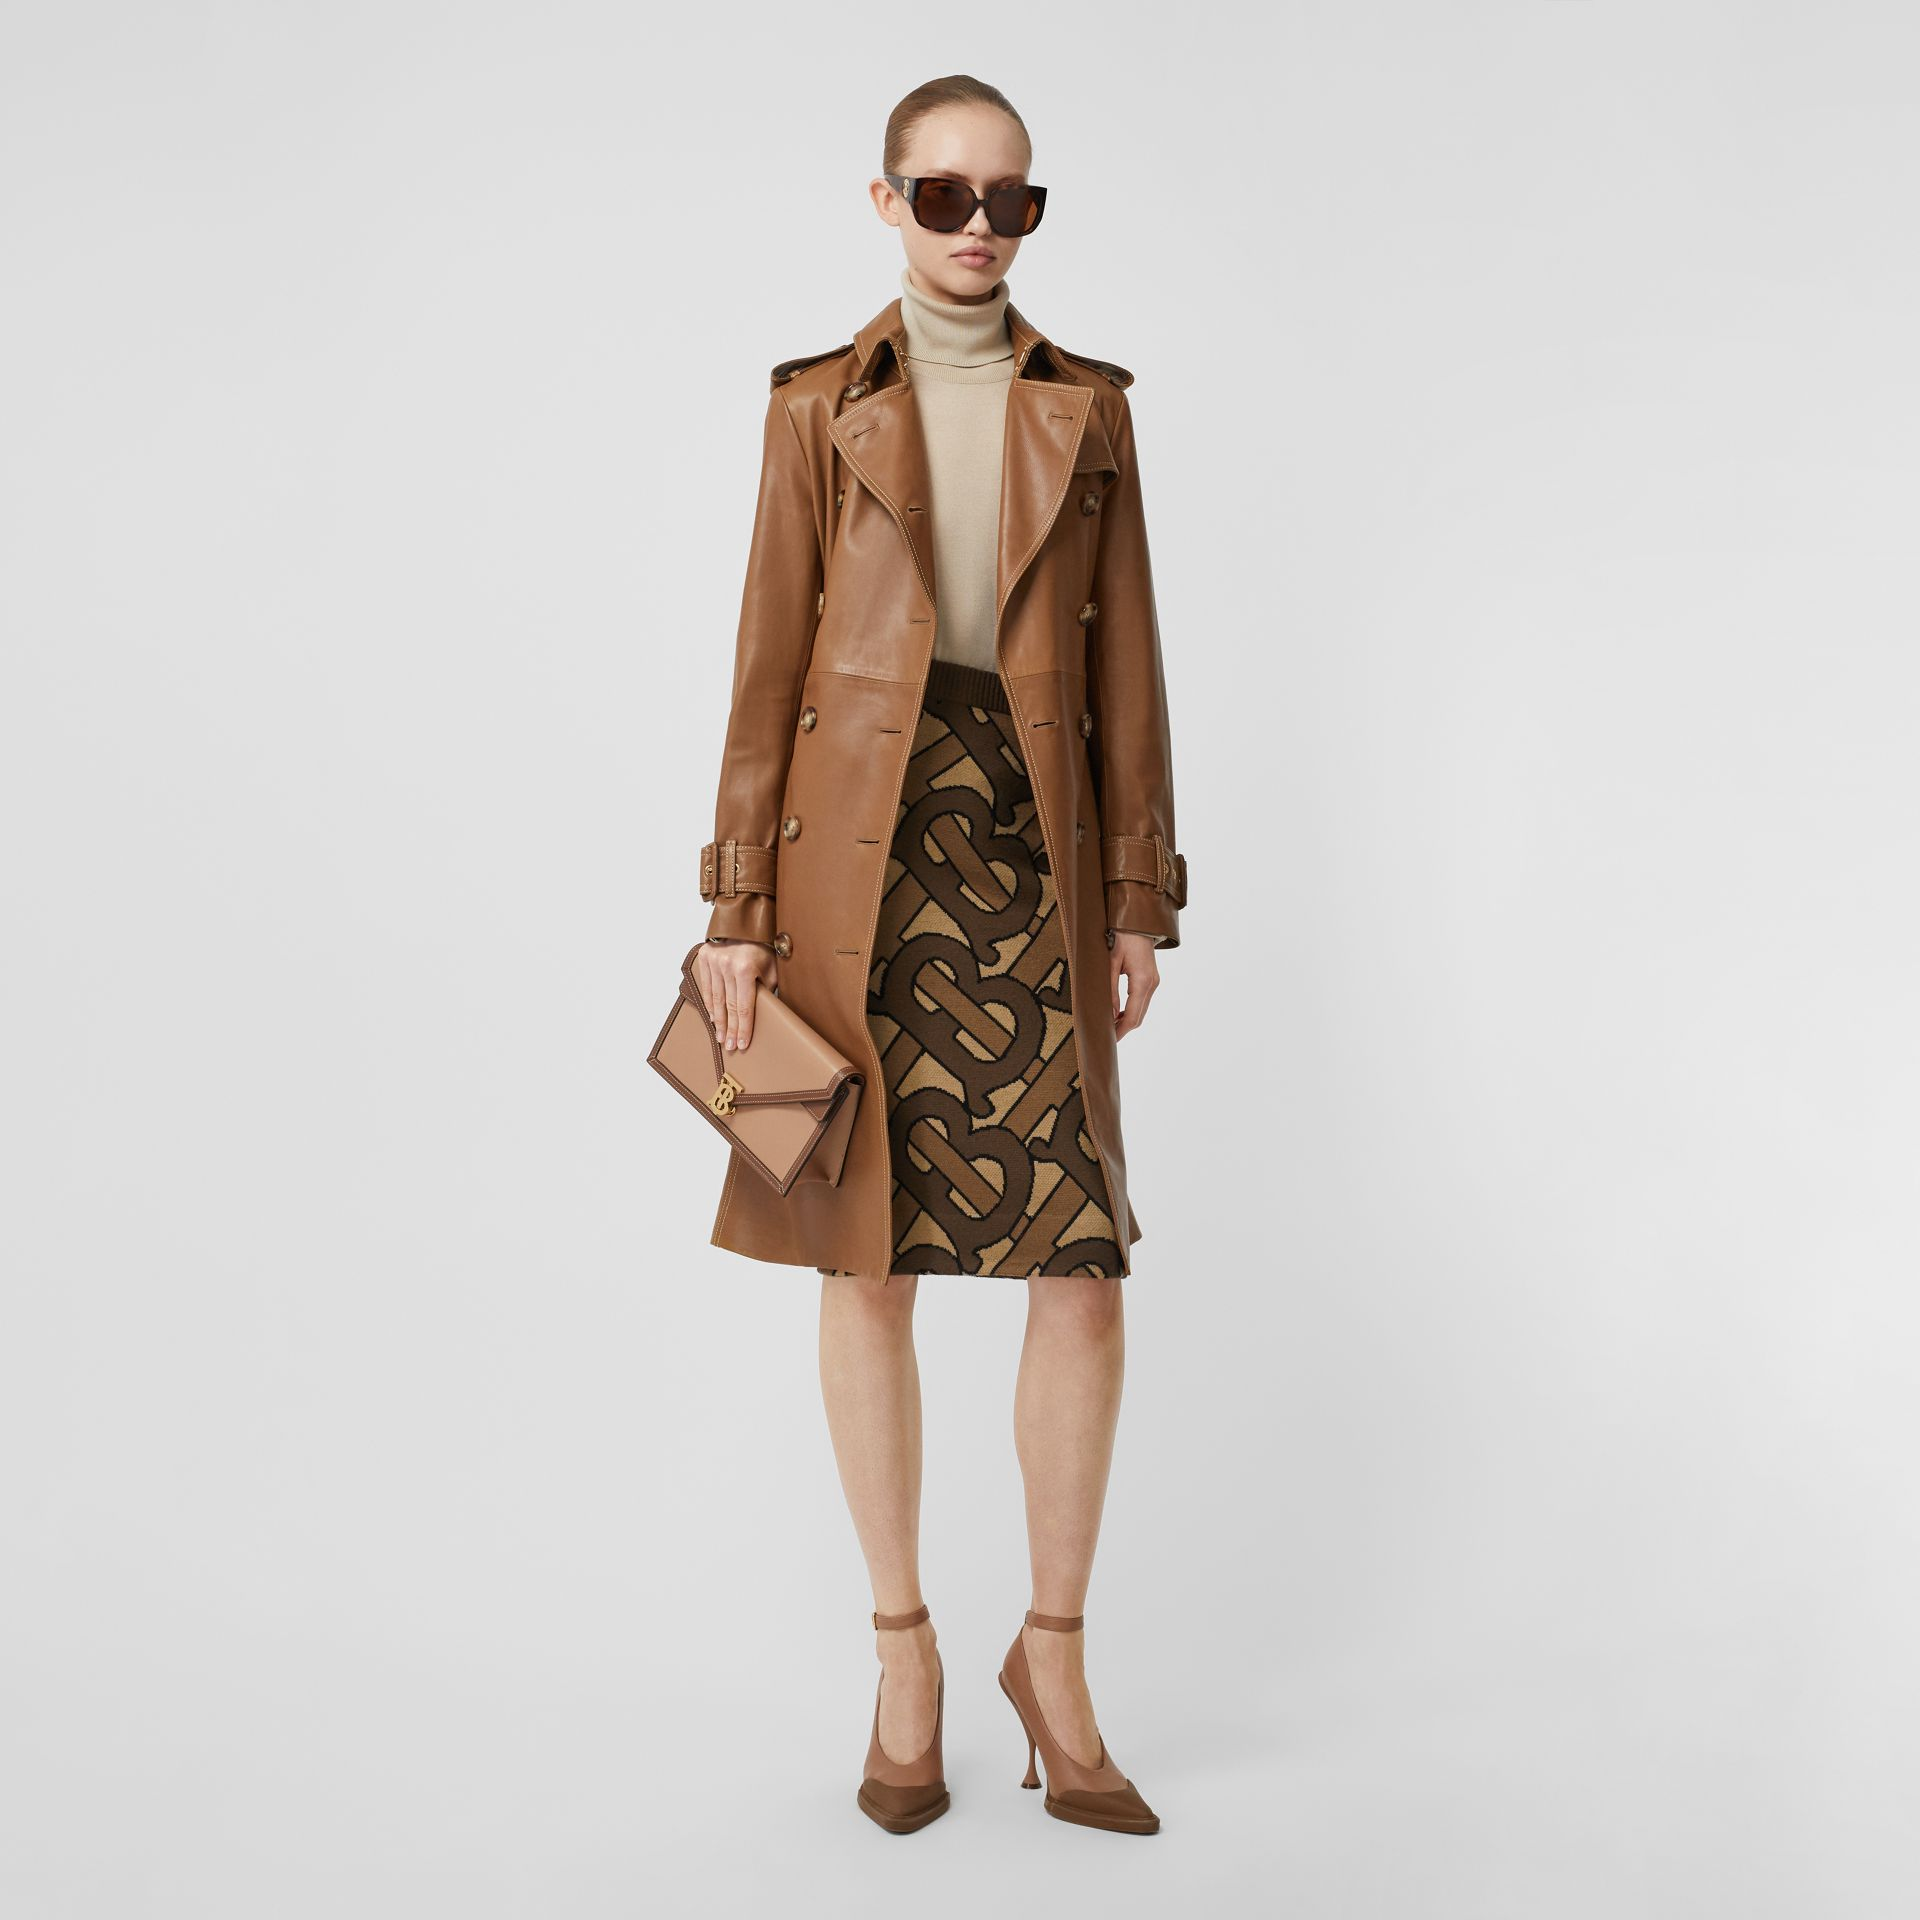 Monogram Intarsia Wool Pencil Skirt in Bridle Brown - Women | Burberry - gallery image 6